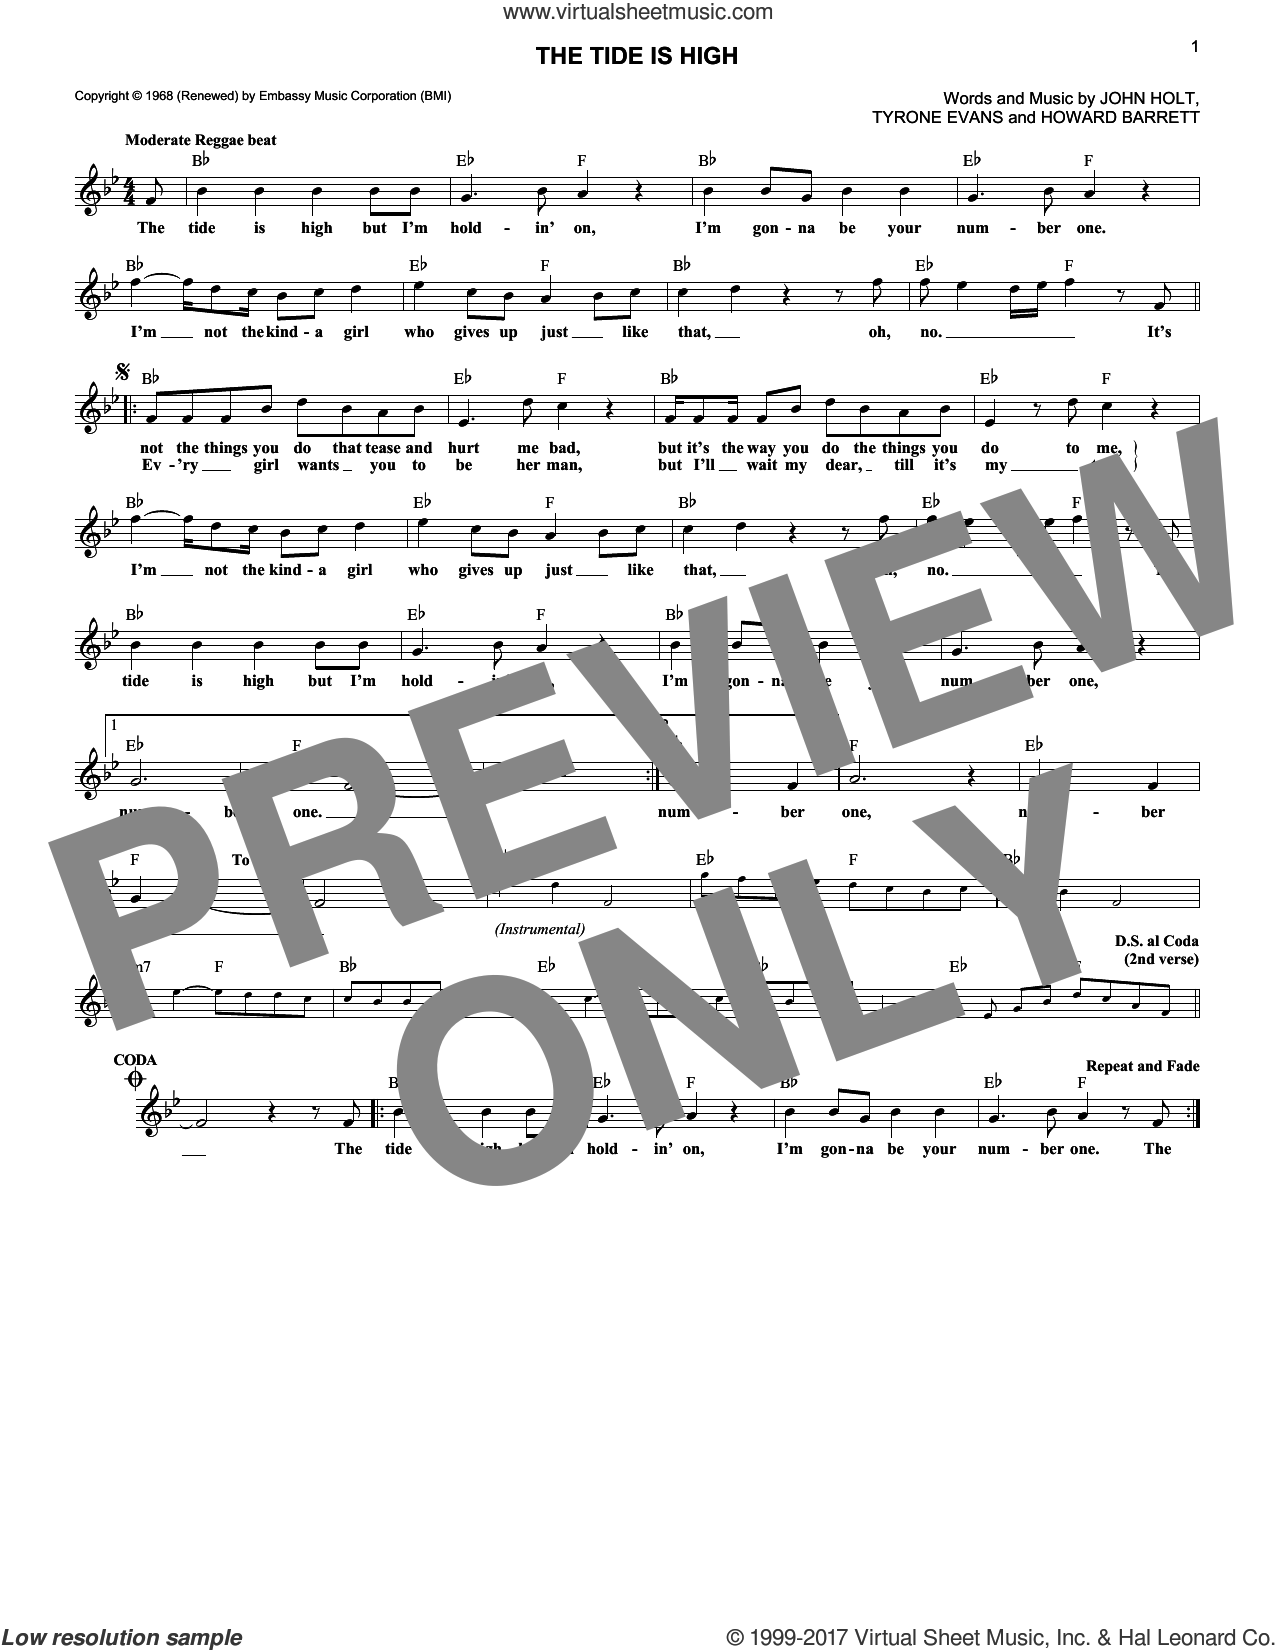 The Tide Is High sheet music for voice and other instruments (fake book) by Blondie, Howard Barrett, John Holt and Tyrone Evans, intermediate skill level